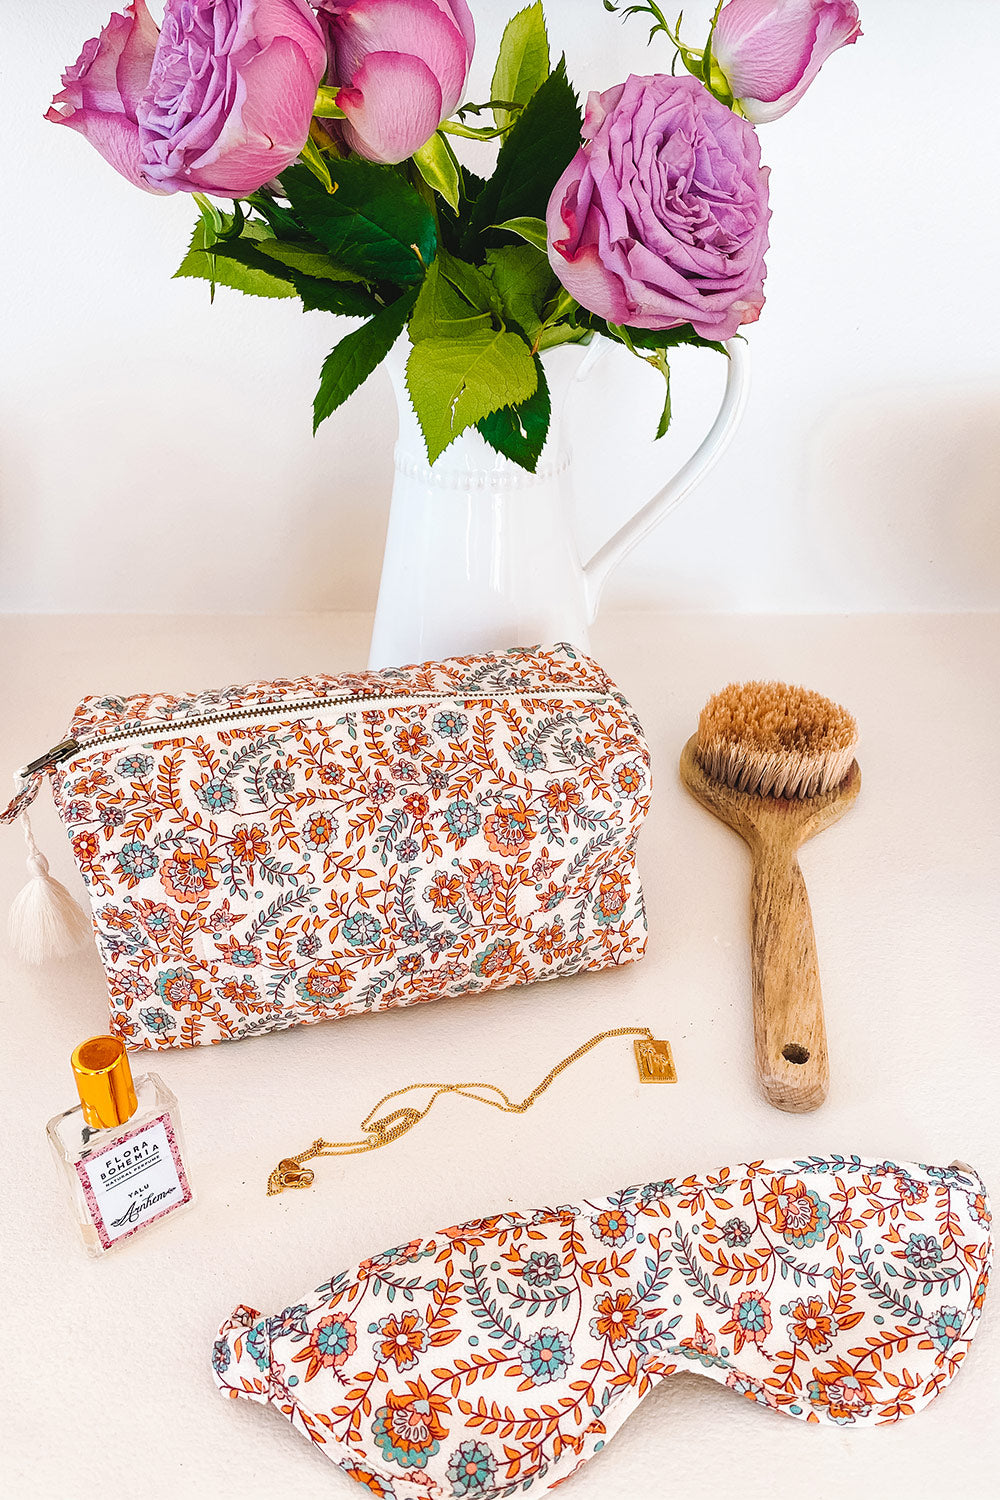 Fleetwood Revive Eye Mask in Floral Cream